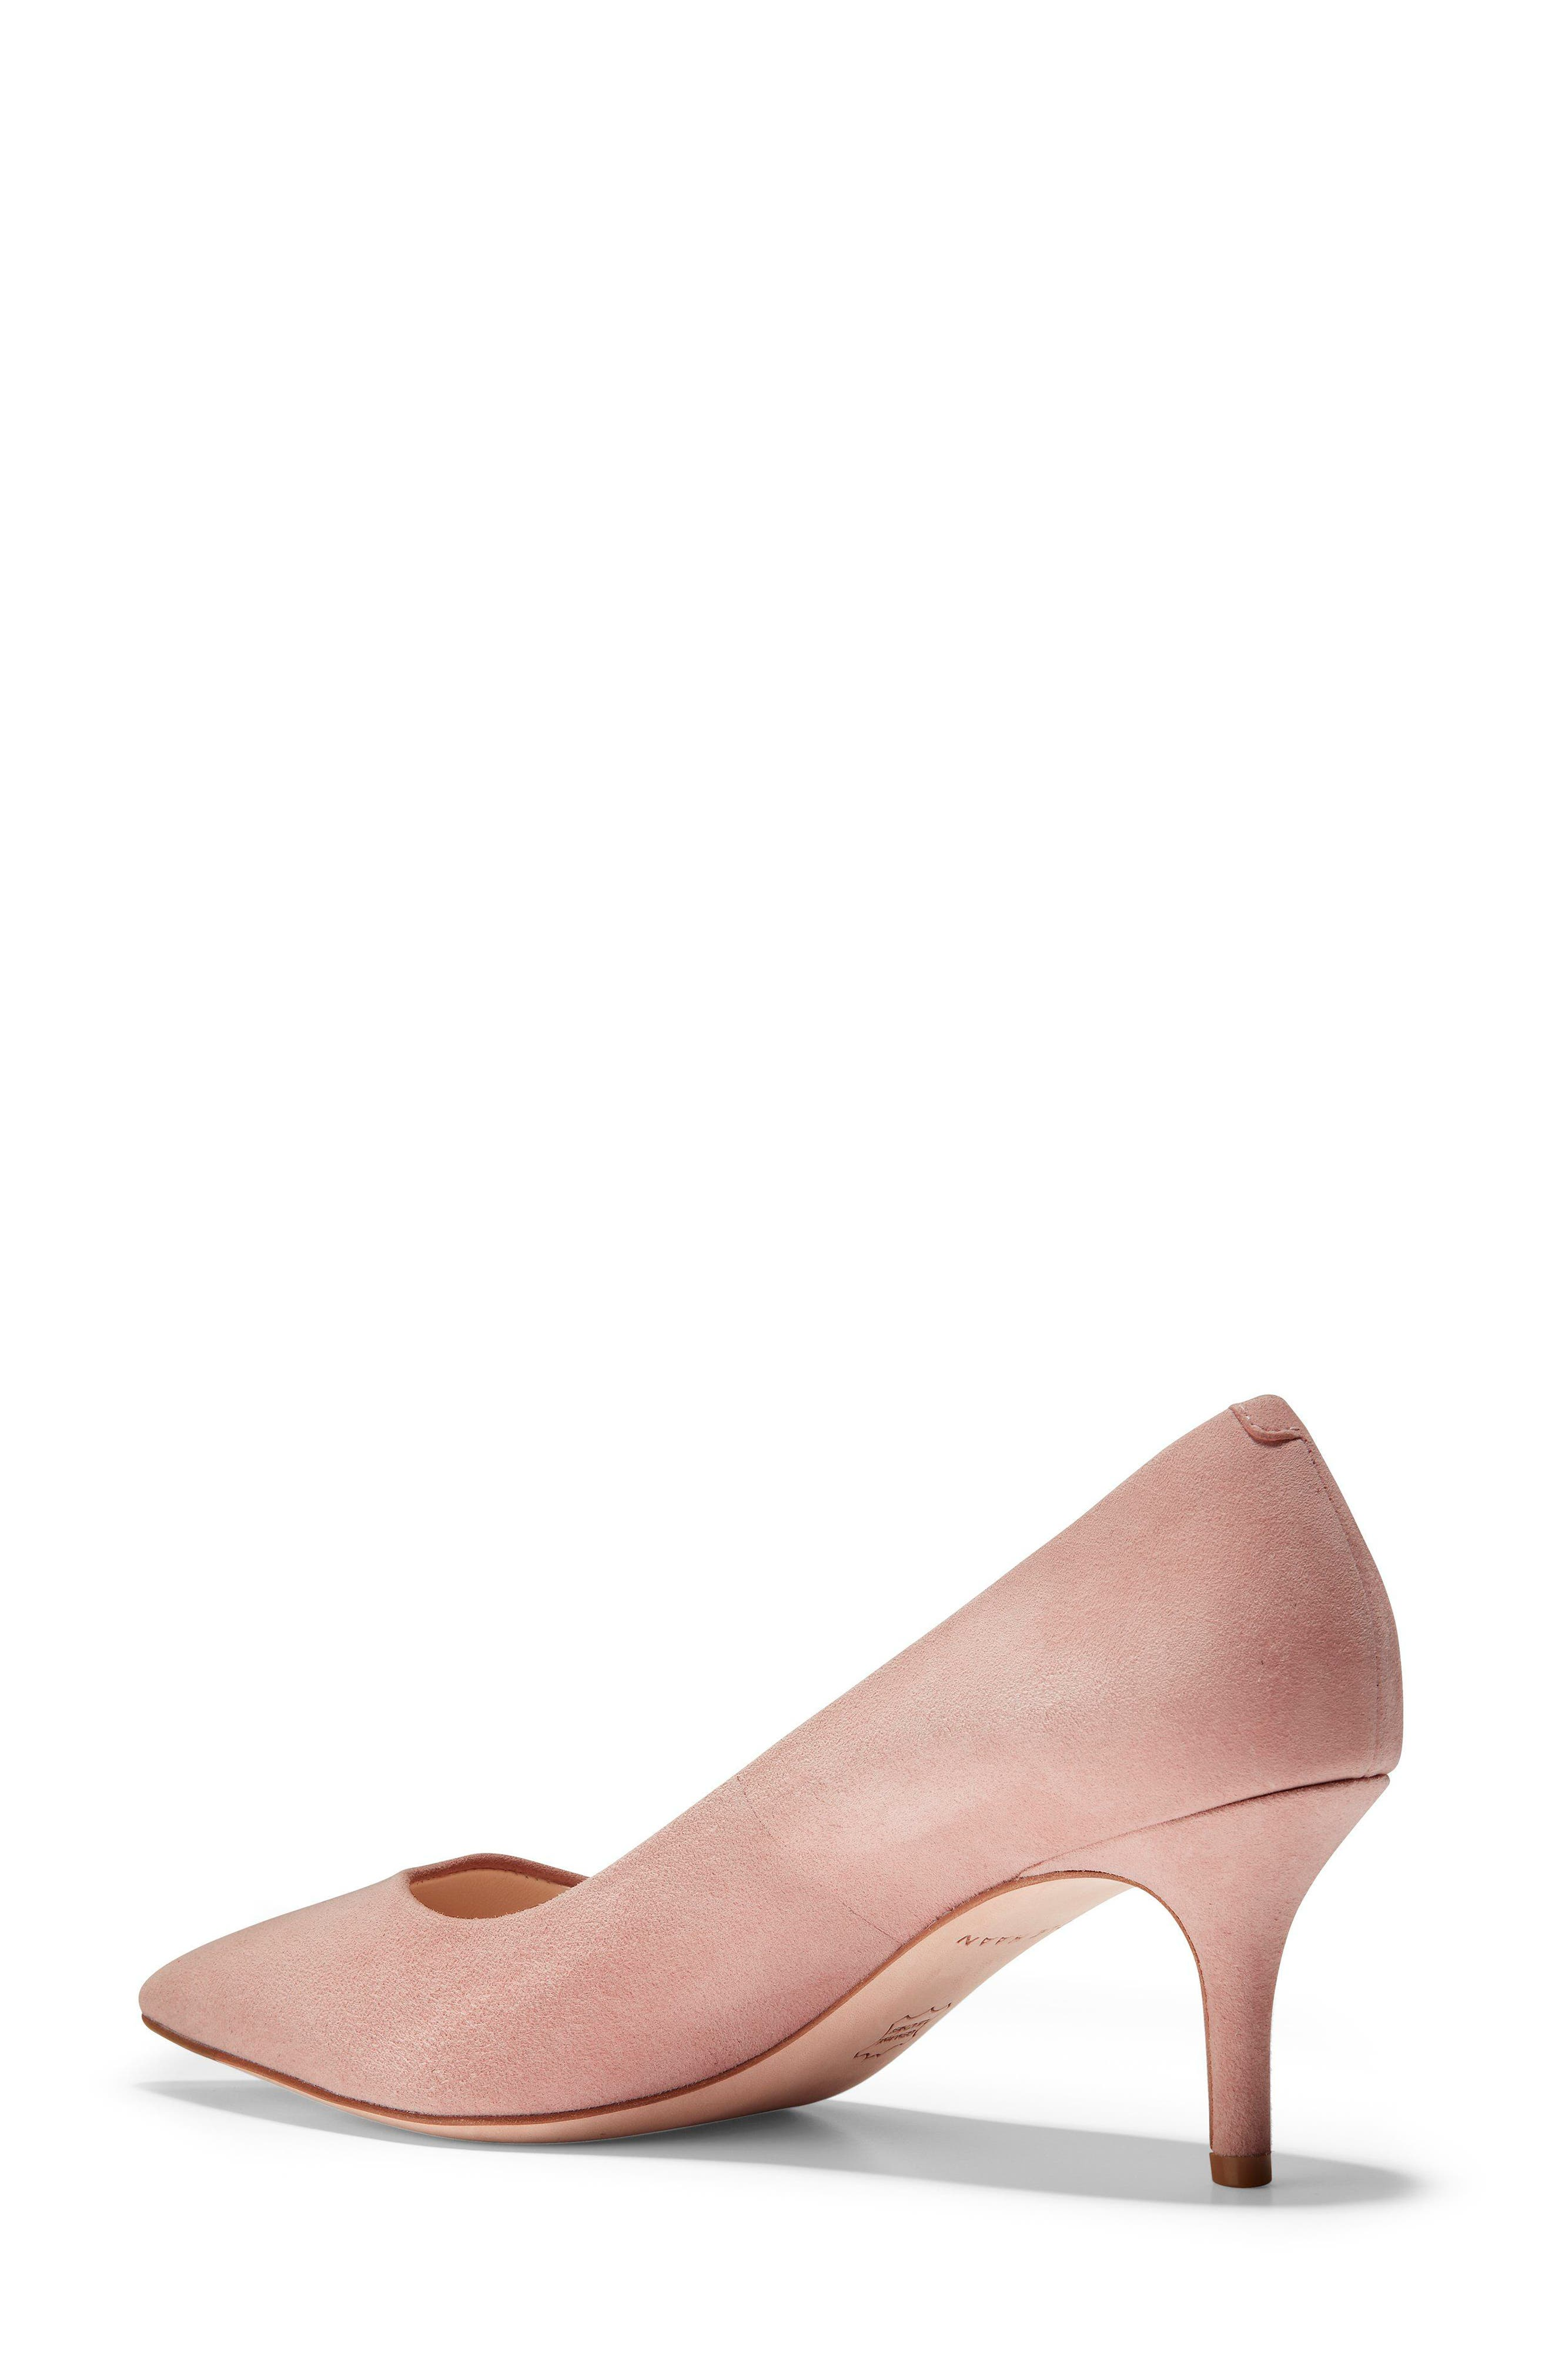 Vesta Pointy Toe Pump,                             Alternate thumbnail 2, color,                             SILVER PINK SUEDE